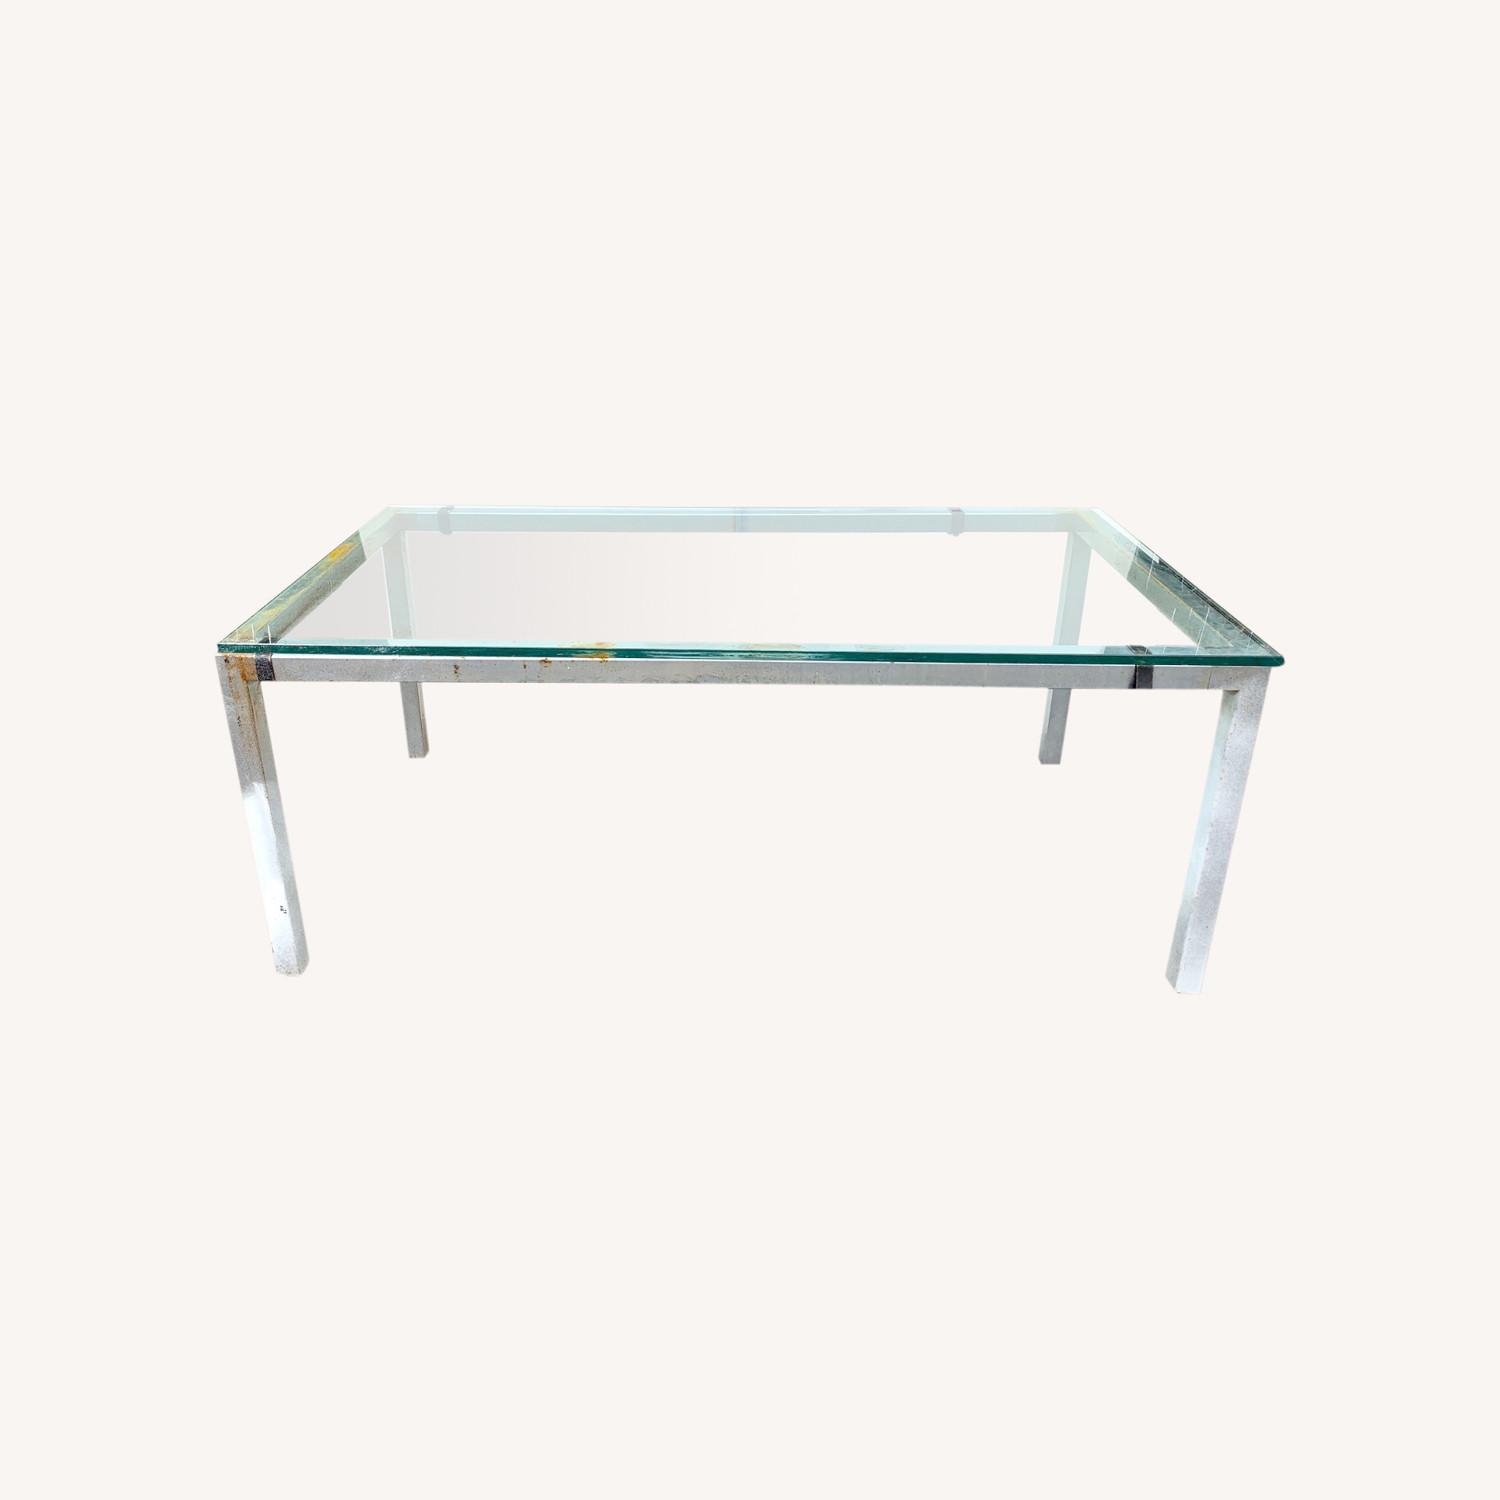 Glass Top Metal Dining Table Desk, Meeting Table - image-0